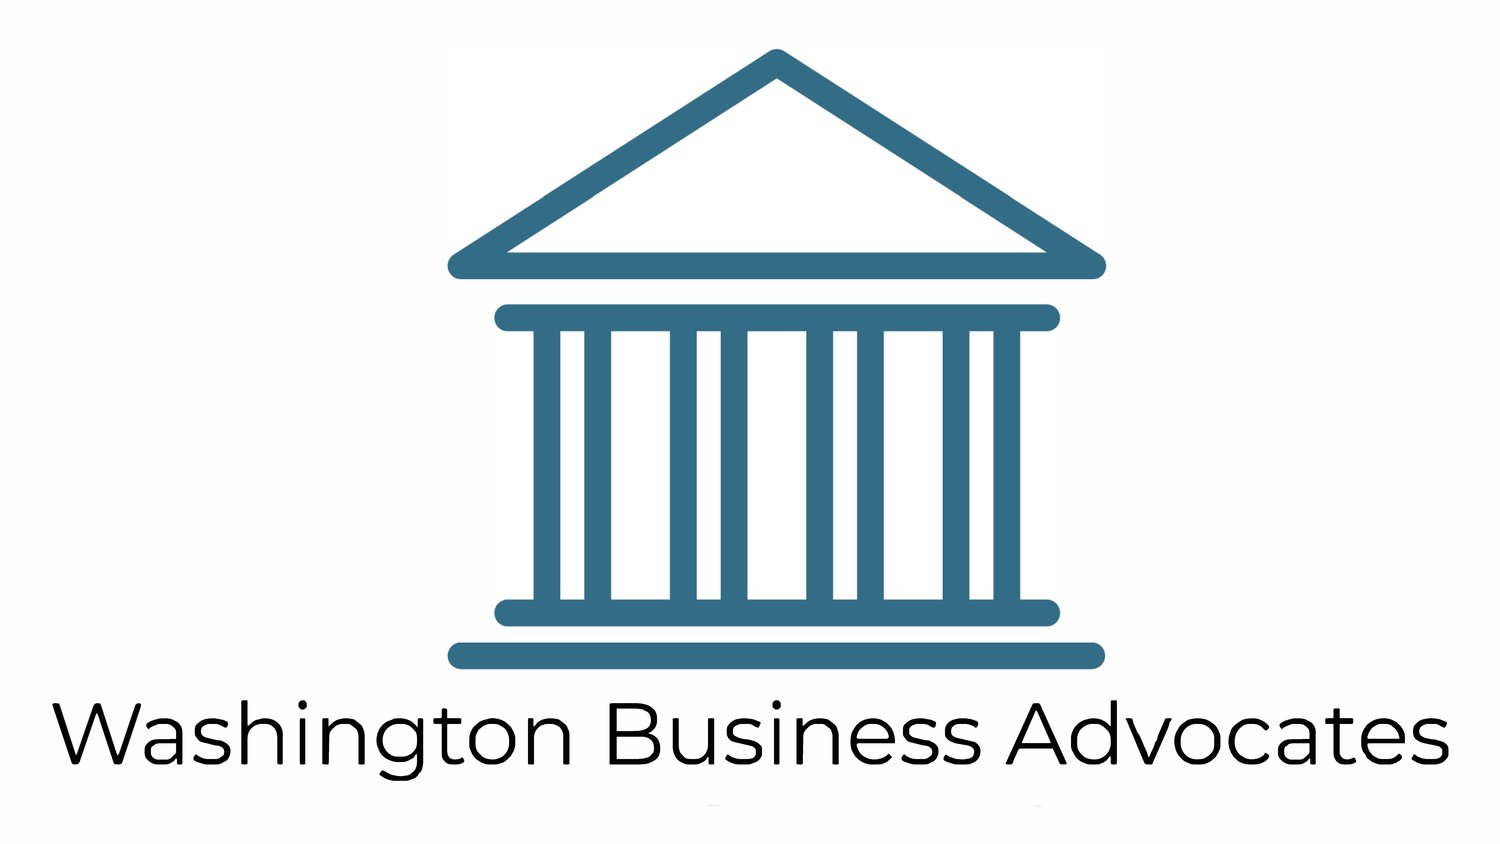 Washington Business Advocates PLLC - L&I Audit Help for Business Owners